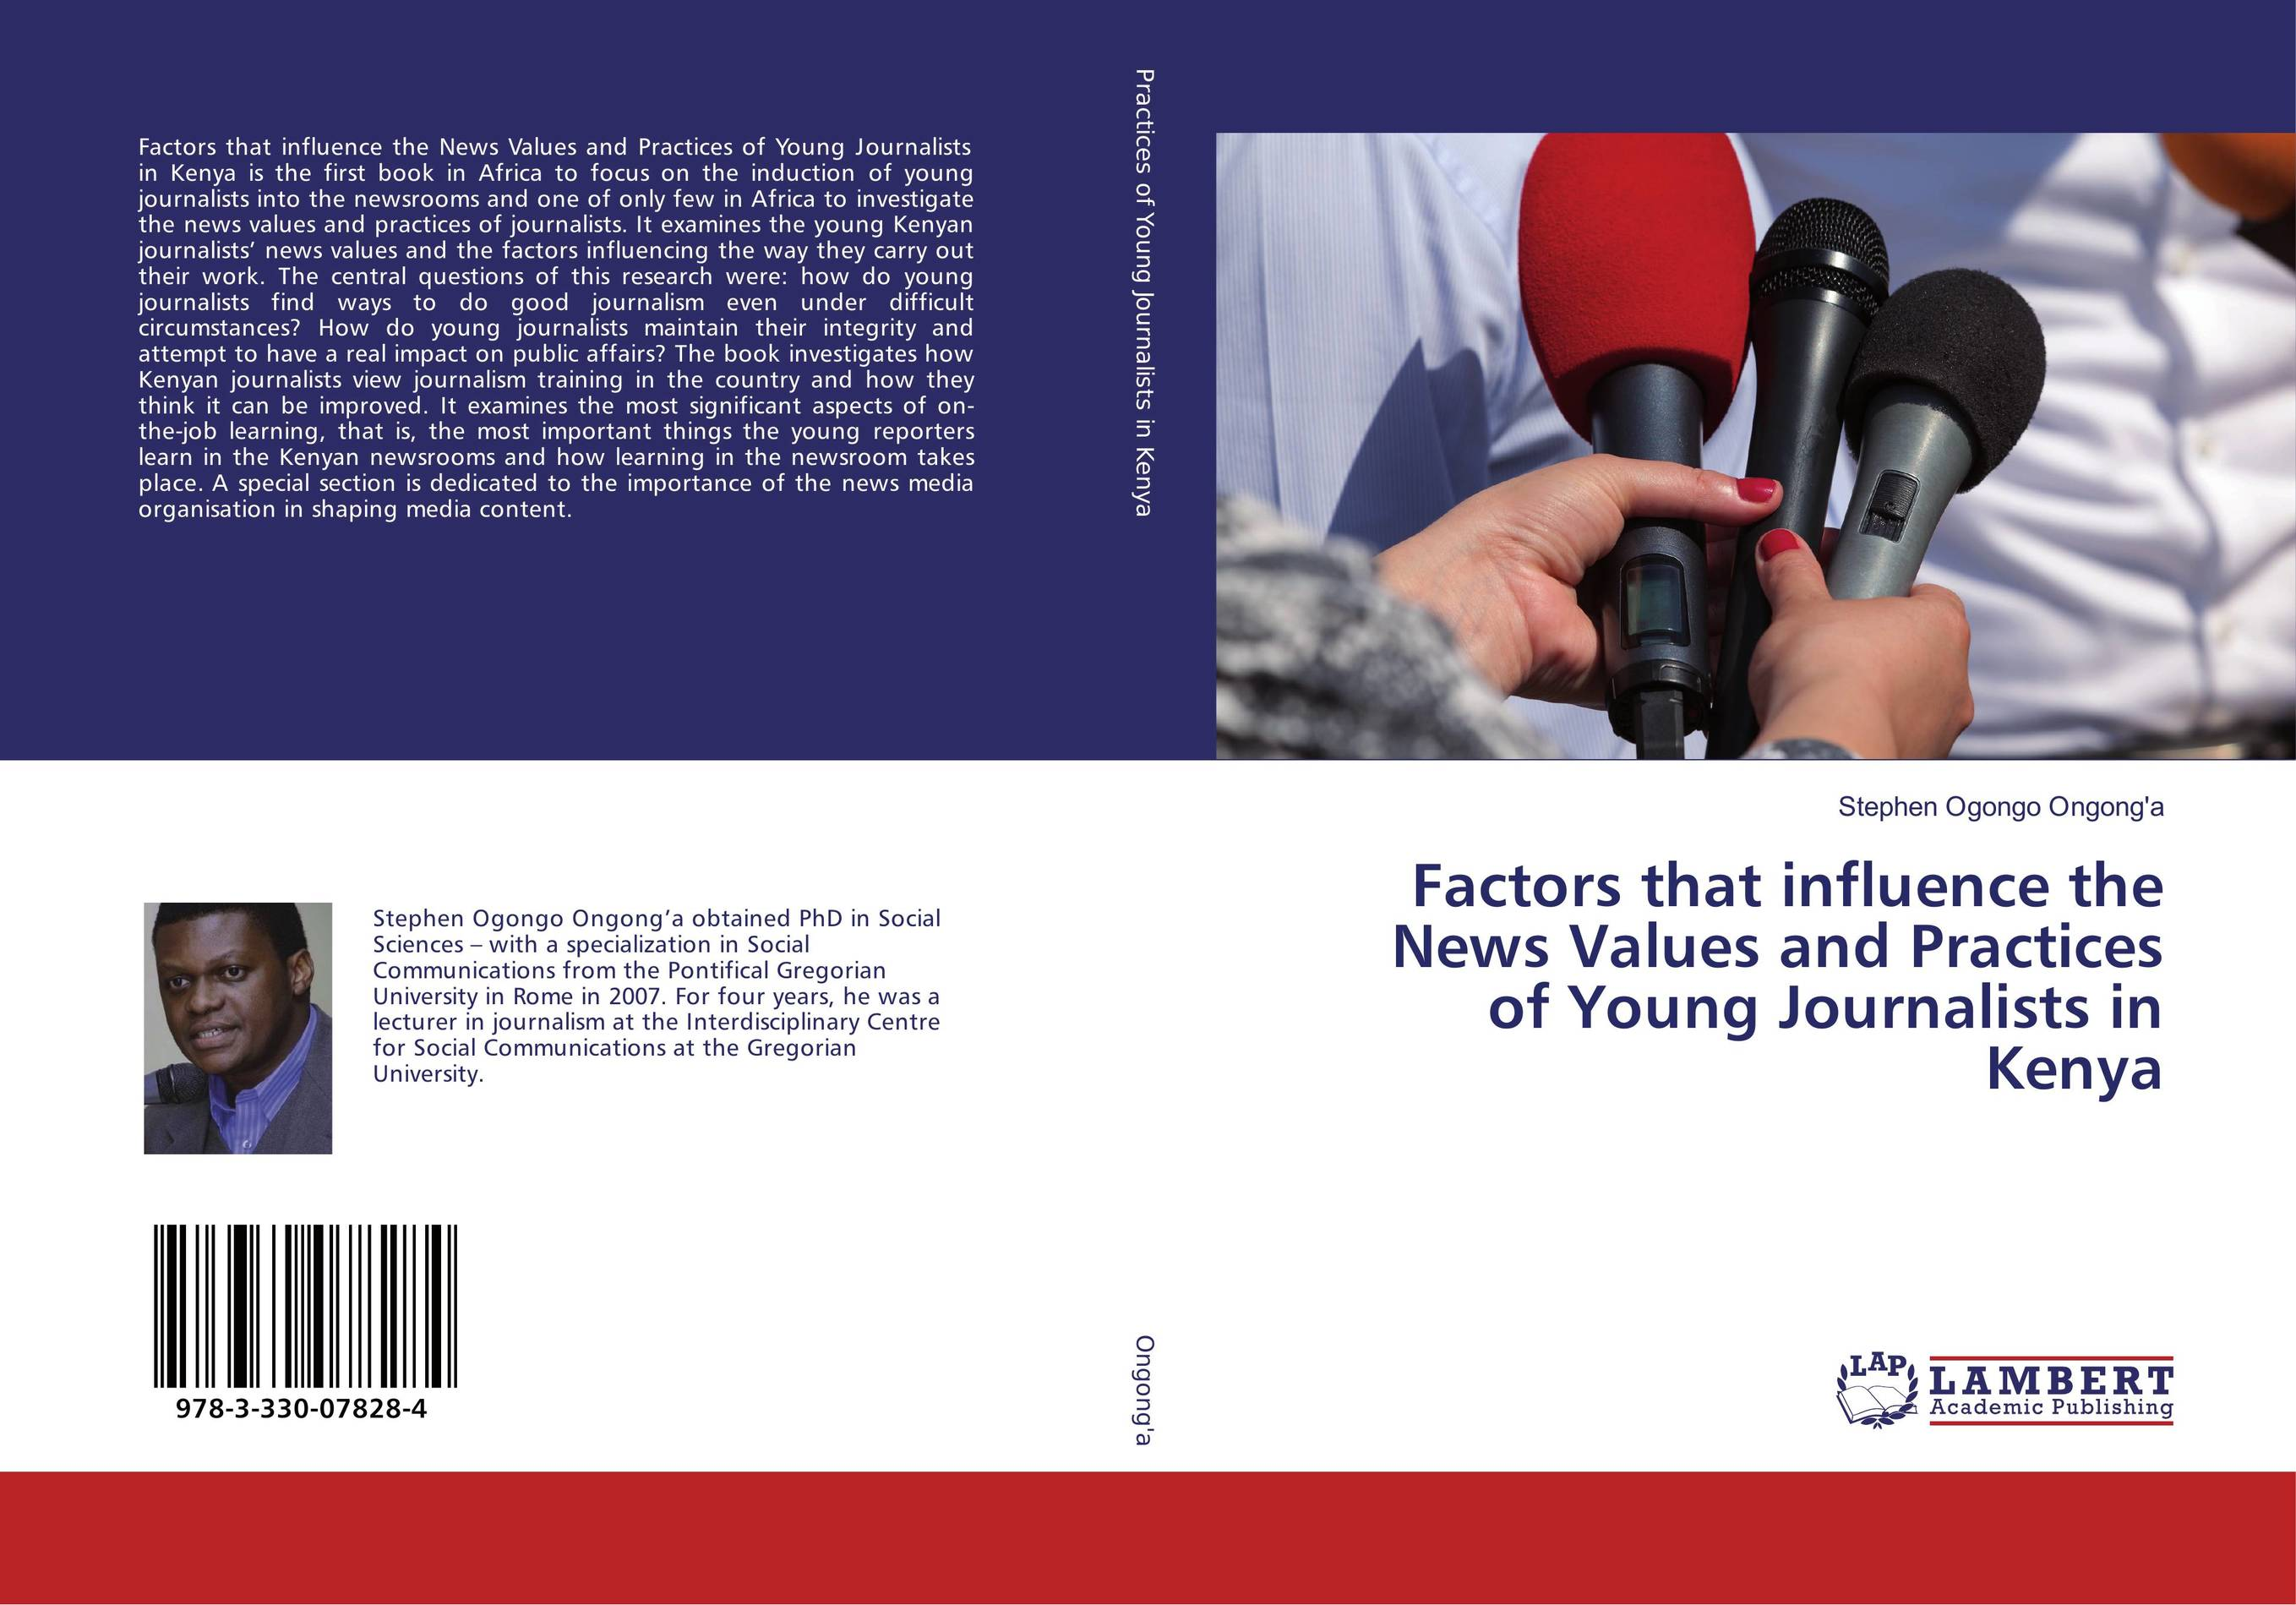 9783330078284 Factors that influence the News Values and Practicists in Kenya